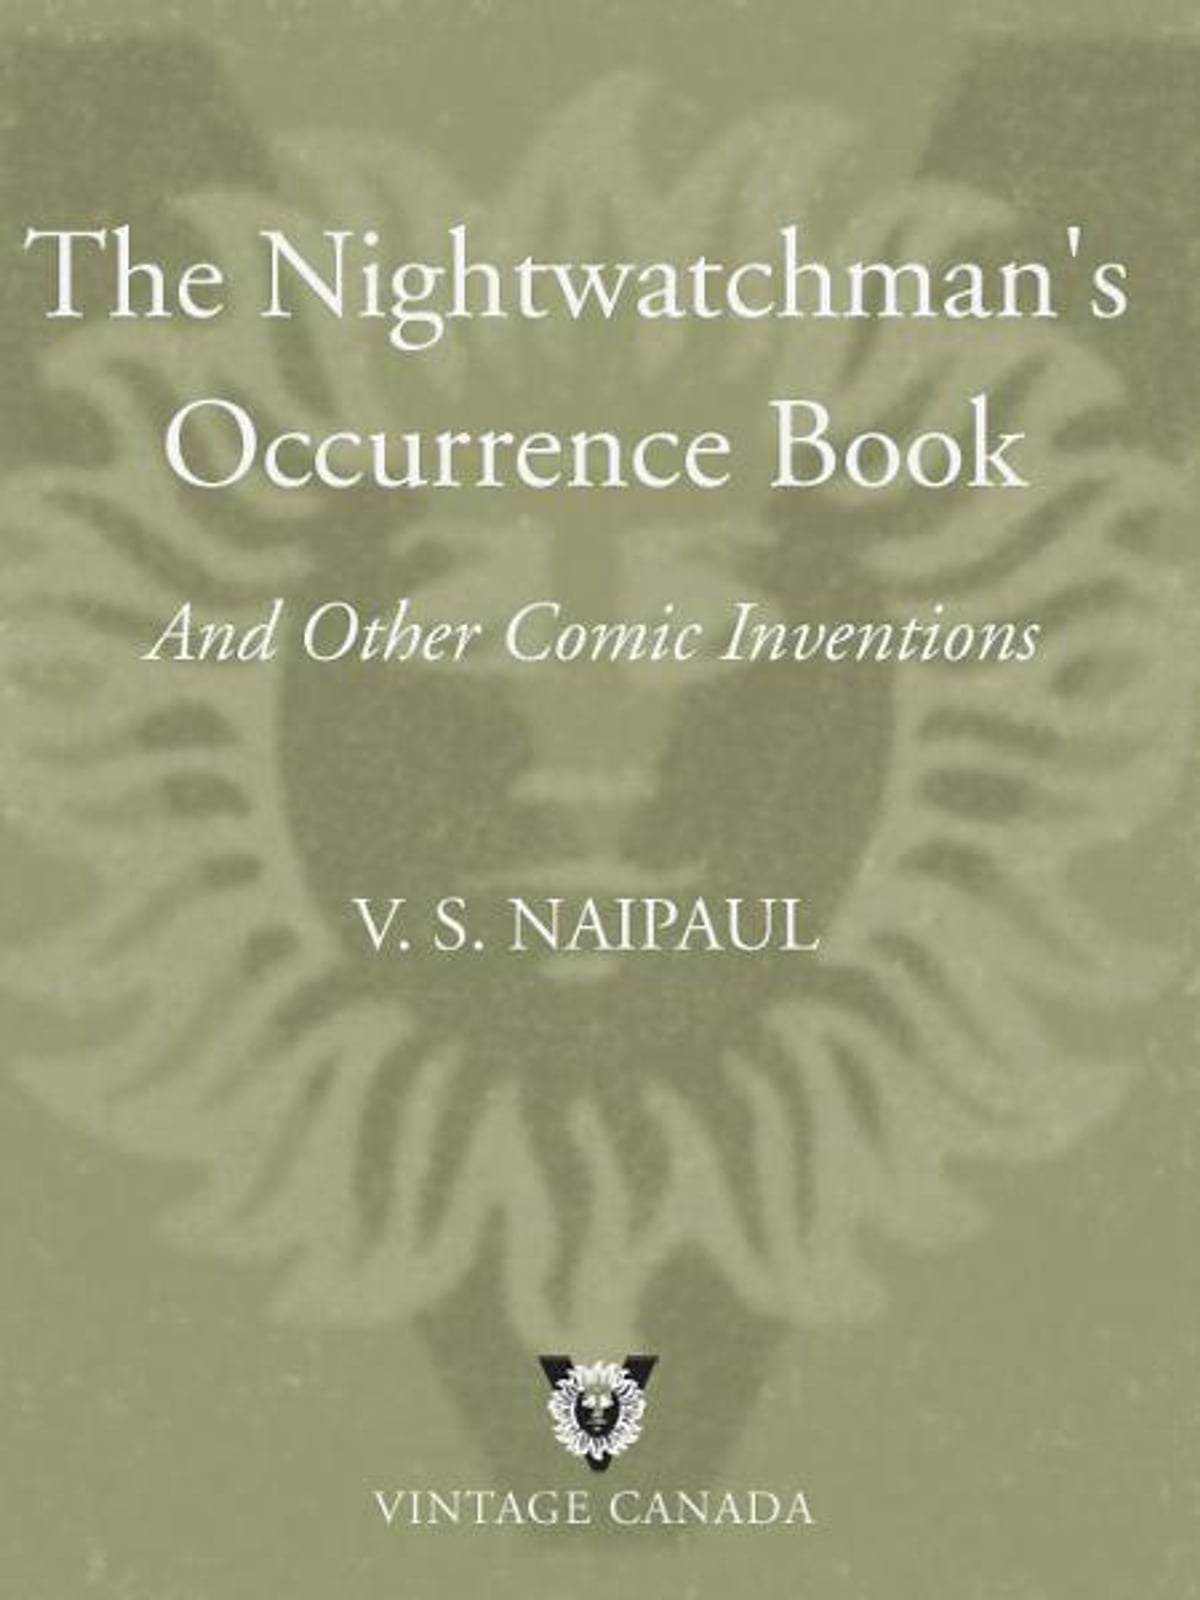 The nightwatchmans occurrence book: and other comic inventions